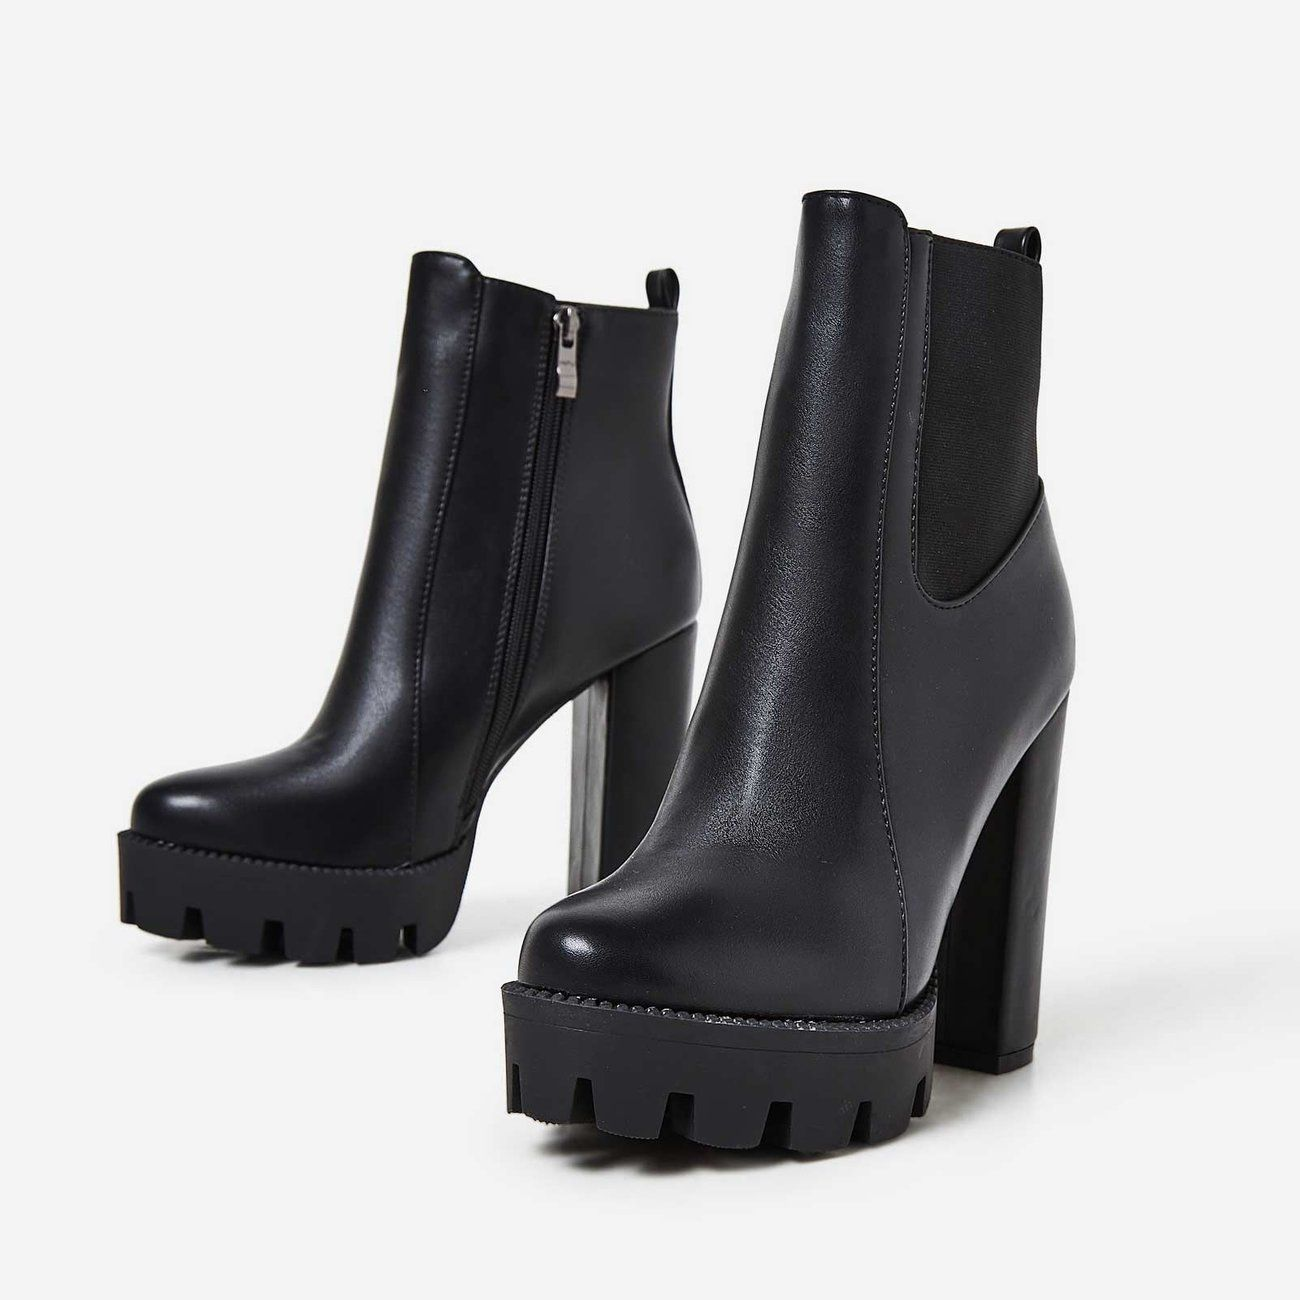 88b0b92ee3a Atlas Platform Biker Boot In Black Faux Leather in 2019 | Style ...